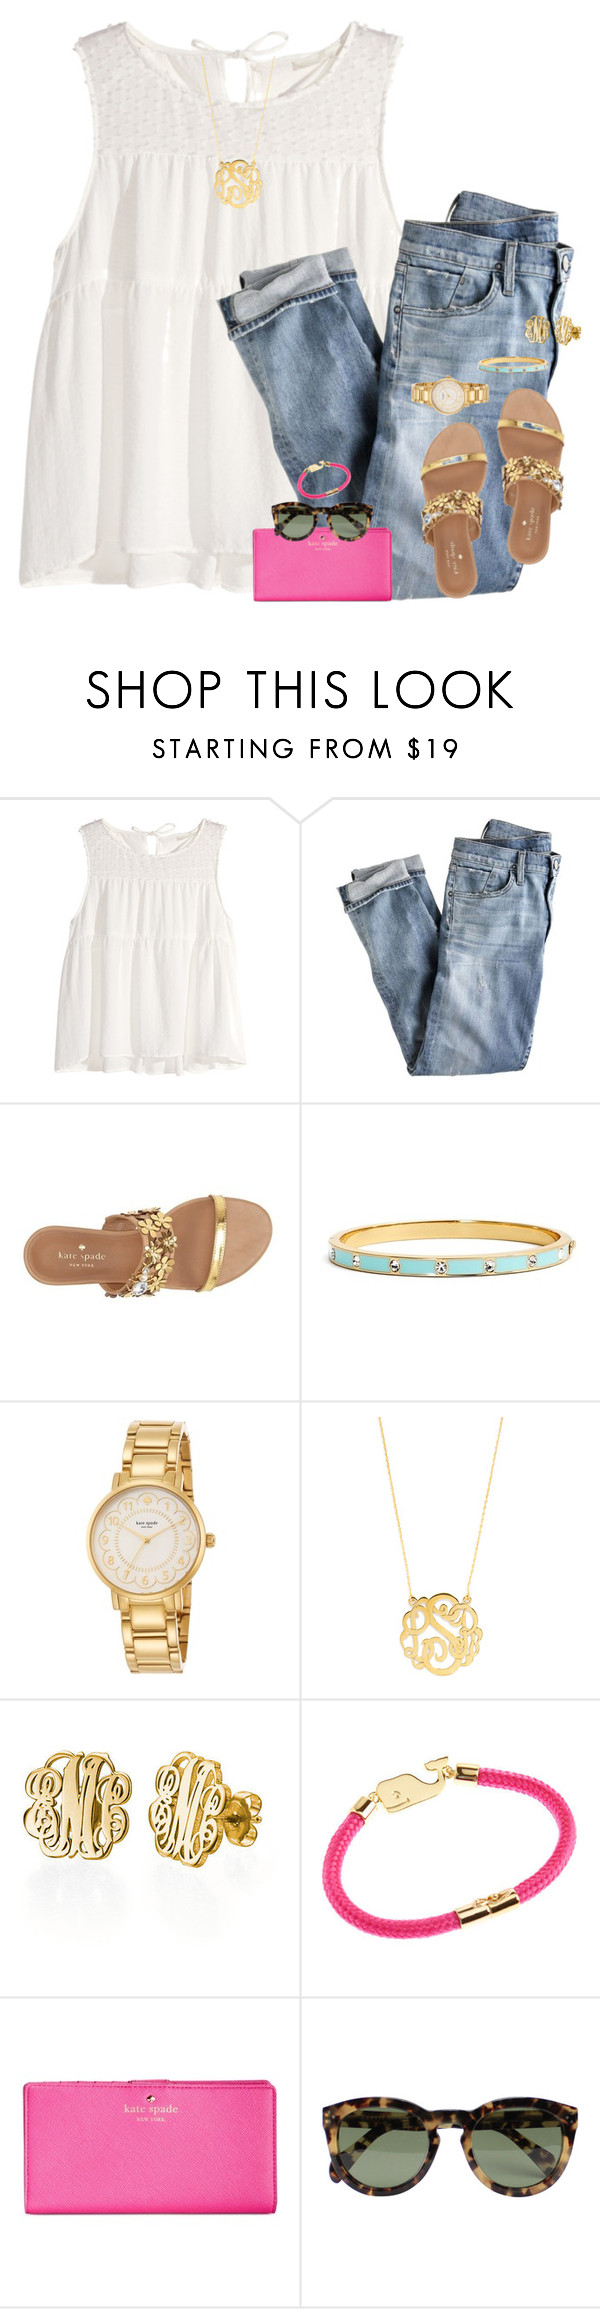 """""""hope!!!"""" by gourney ❤ liked on Polyvore featuring H&M, J.Crew, Kate Spade, BaubleBar, Vineyard Vines, CÉLINE, women's clothing, women, female and woman"""